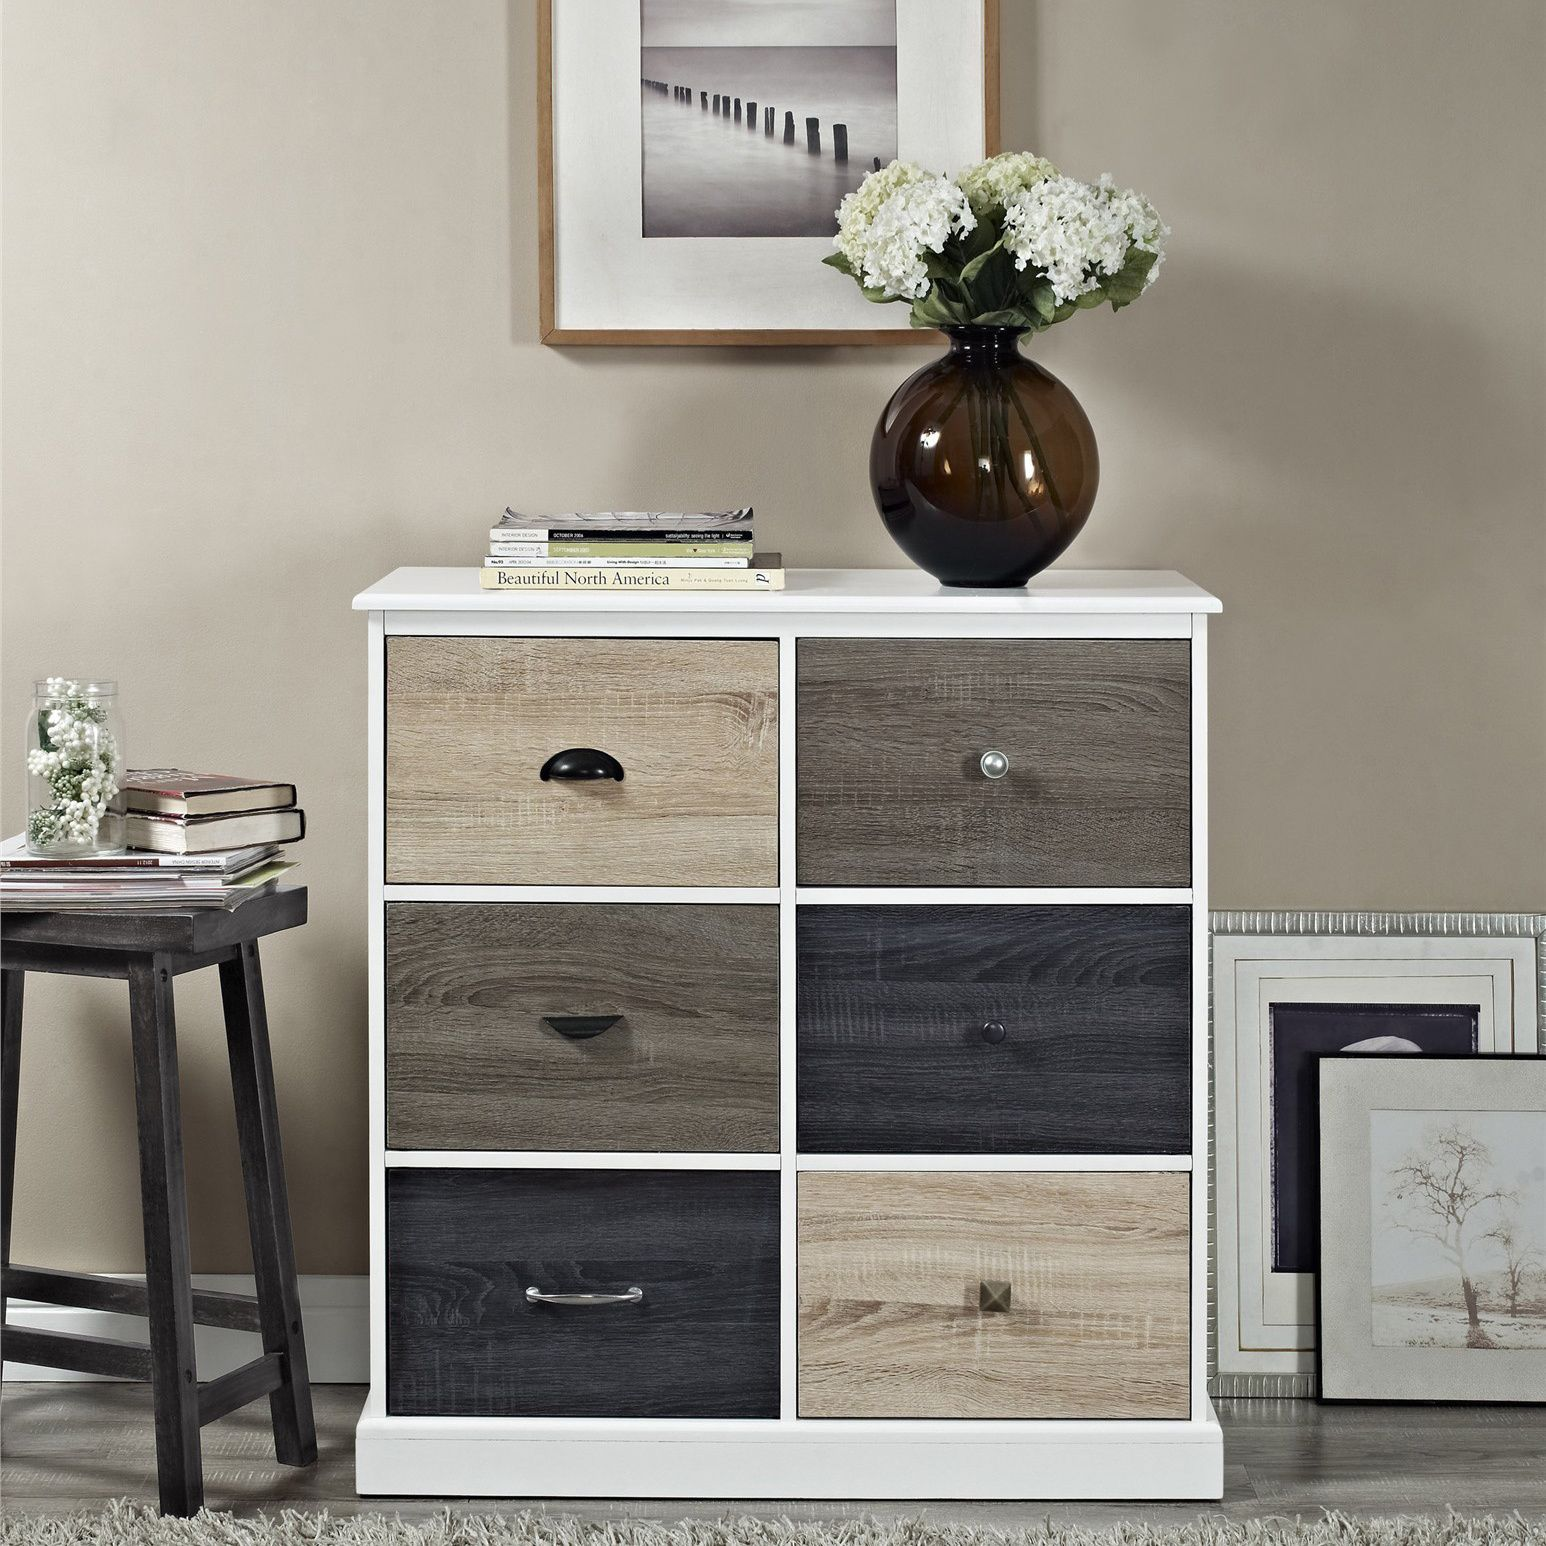 A Great Storage Solution For Any Room In The House,